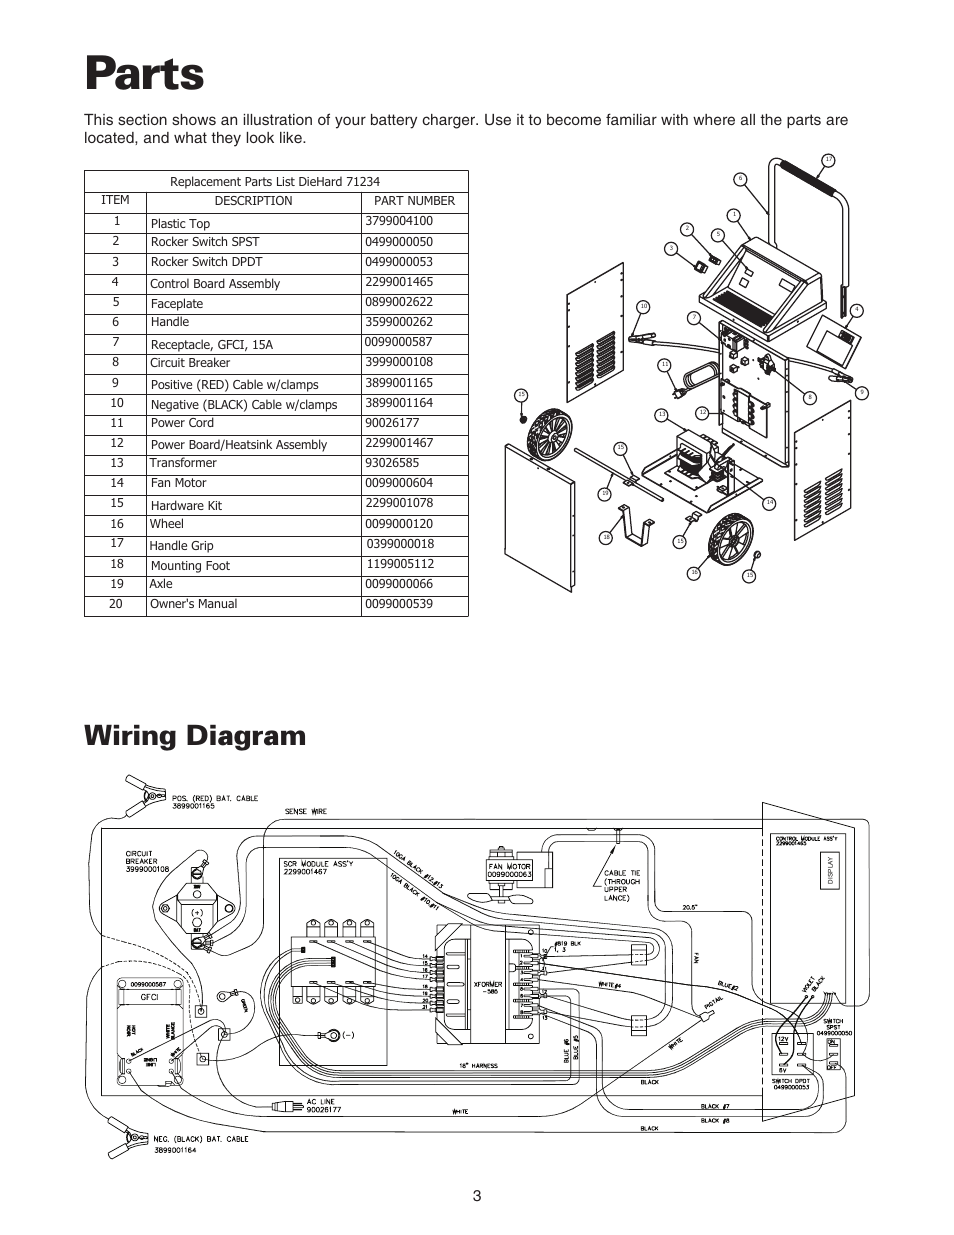 Parts Wiring Diagram Sears 200 71234 User Manual Page